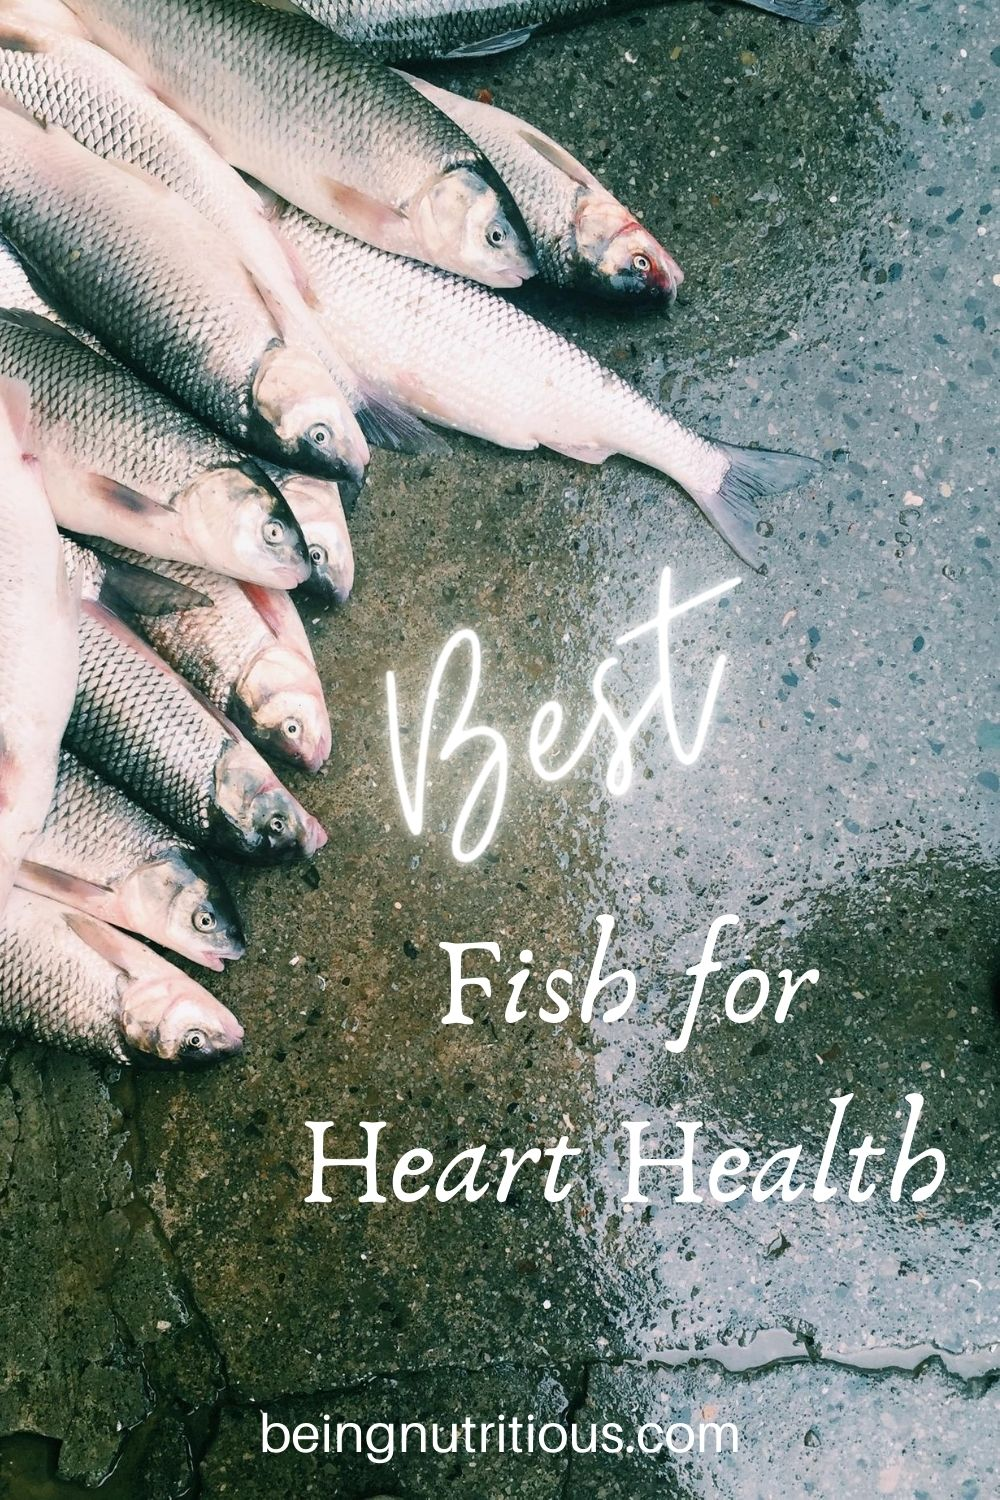 Pile of fish lying on wet concrete with text overlay: Best Fish for Heart Health